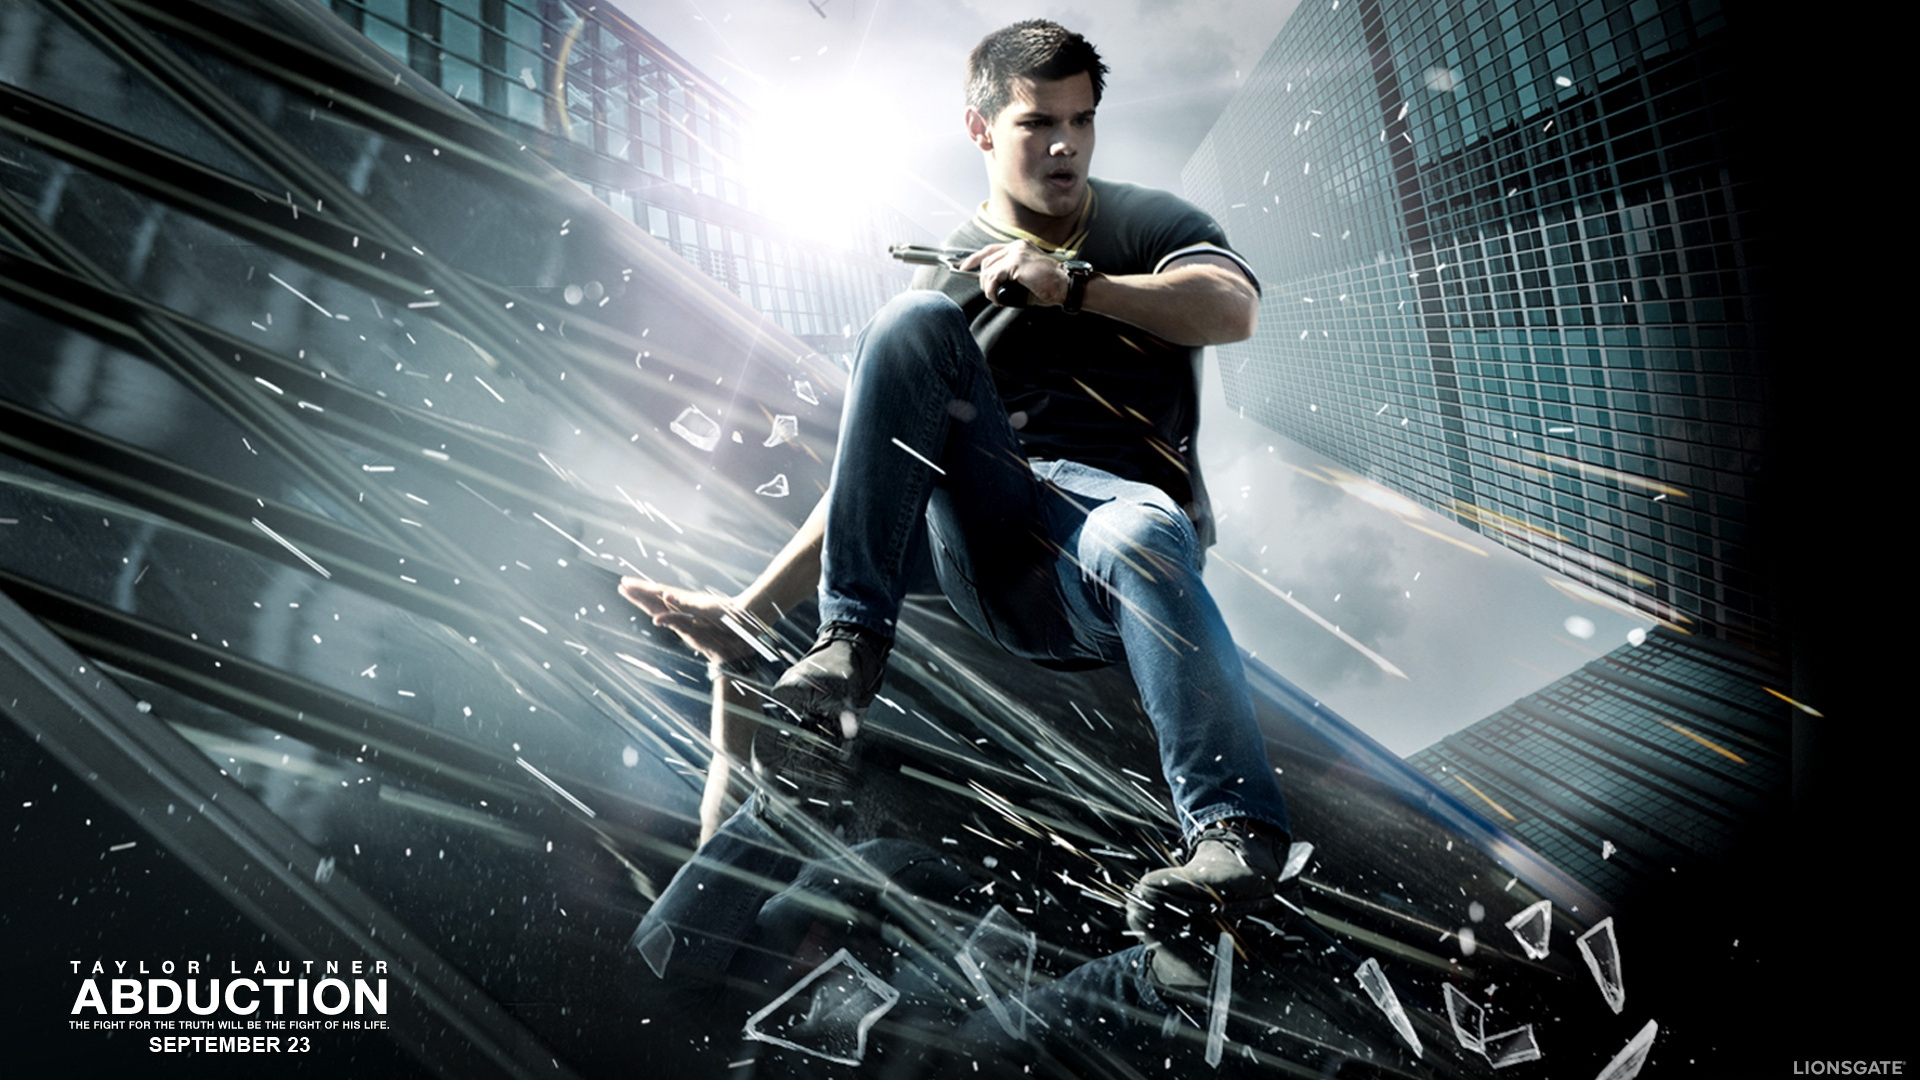 Abduction HD Wallpaper Background Image 1920x1080 ID154773 1920x1080